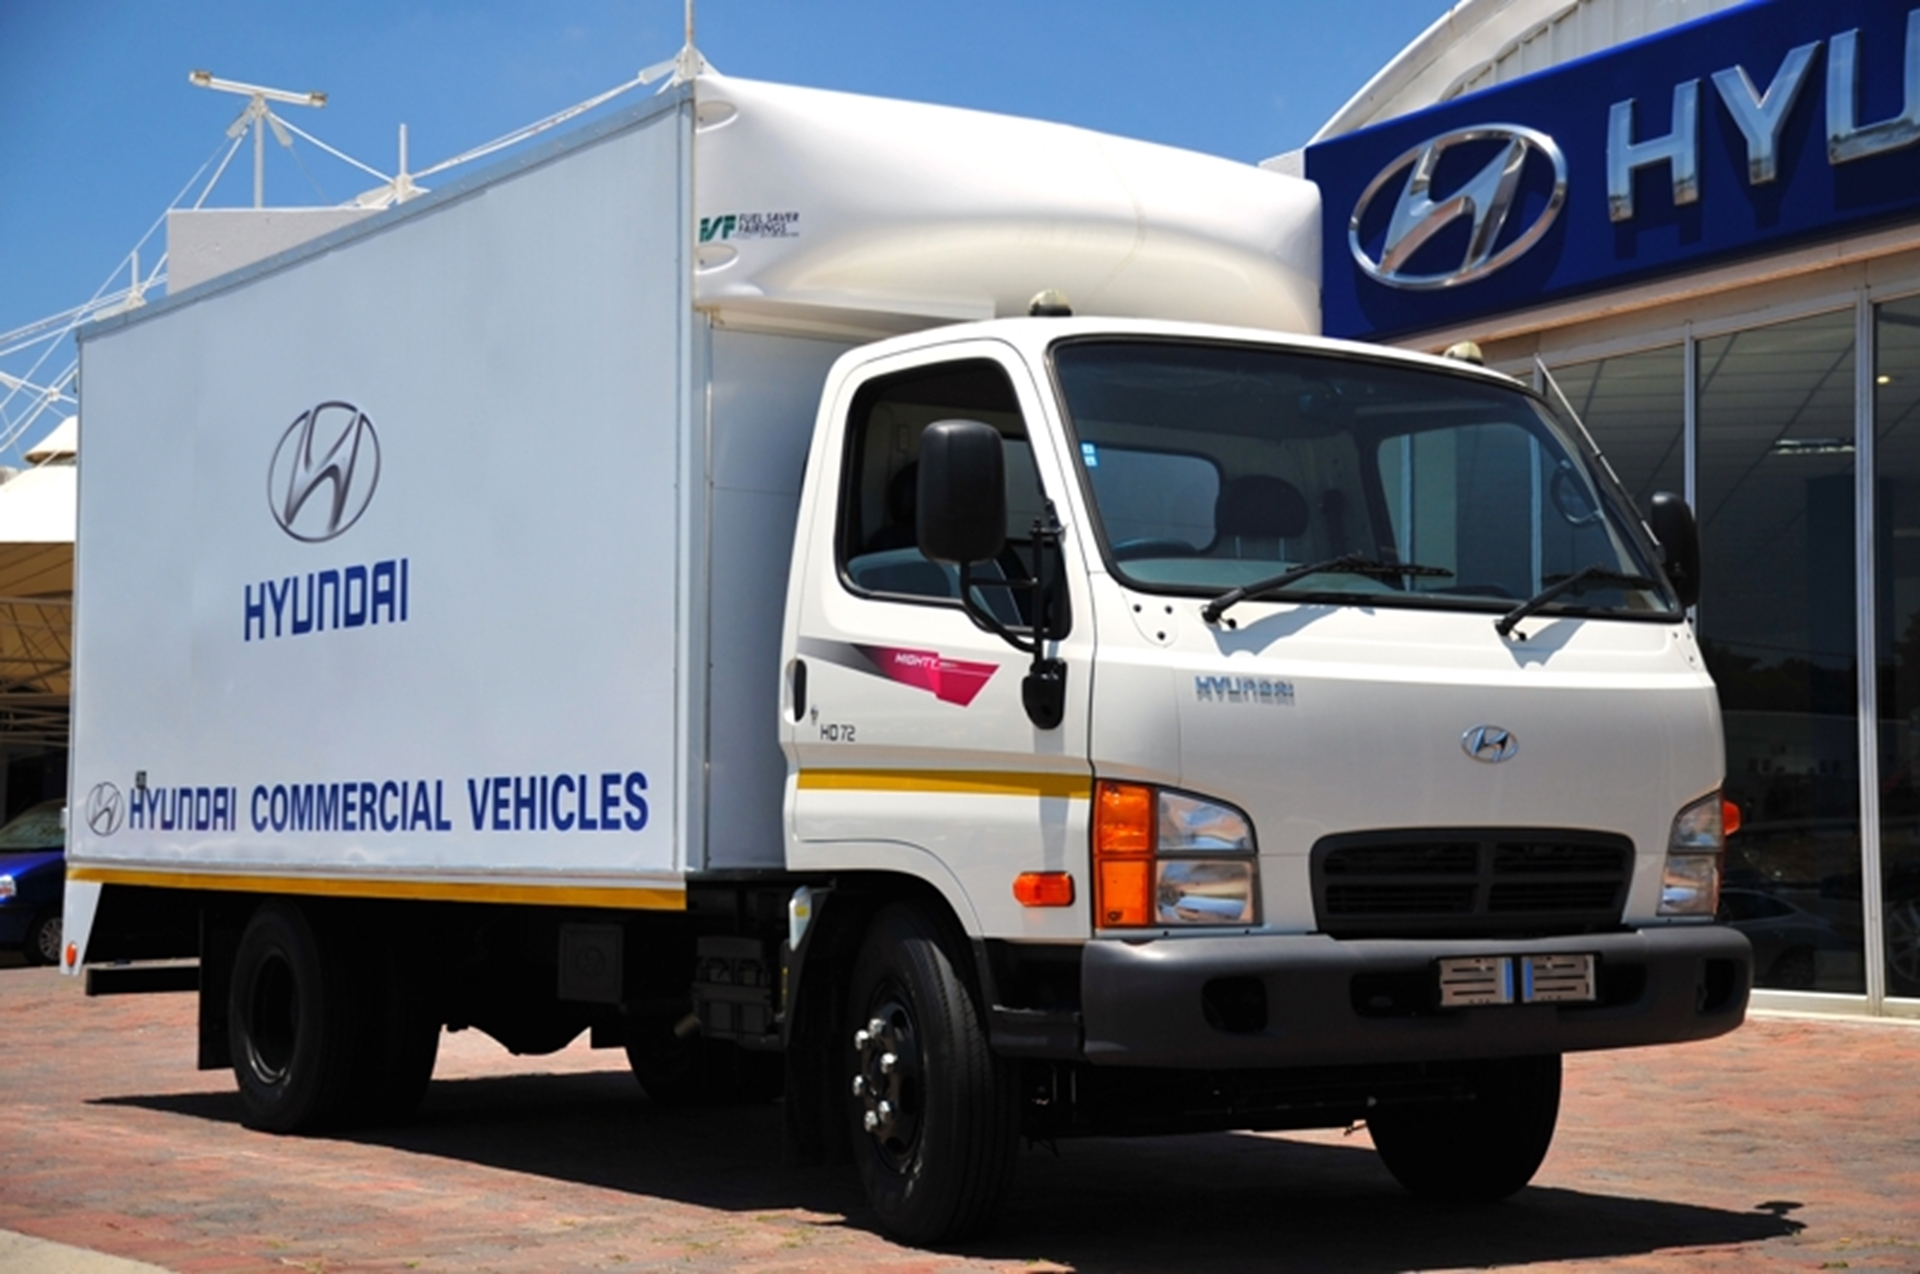 Hyundai HD72 Commercial Vehicles